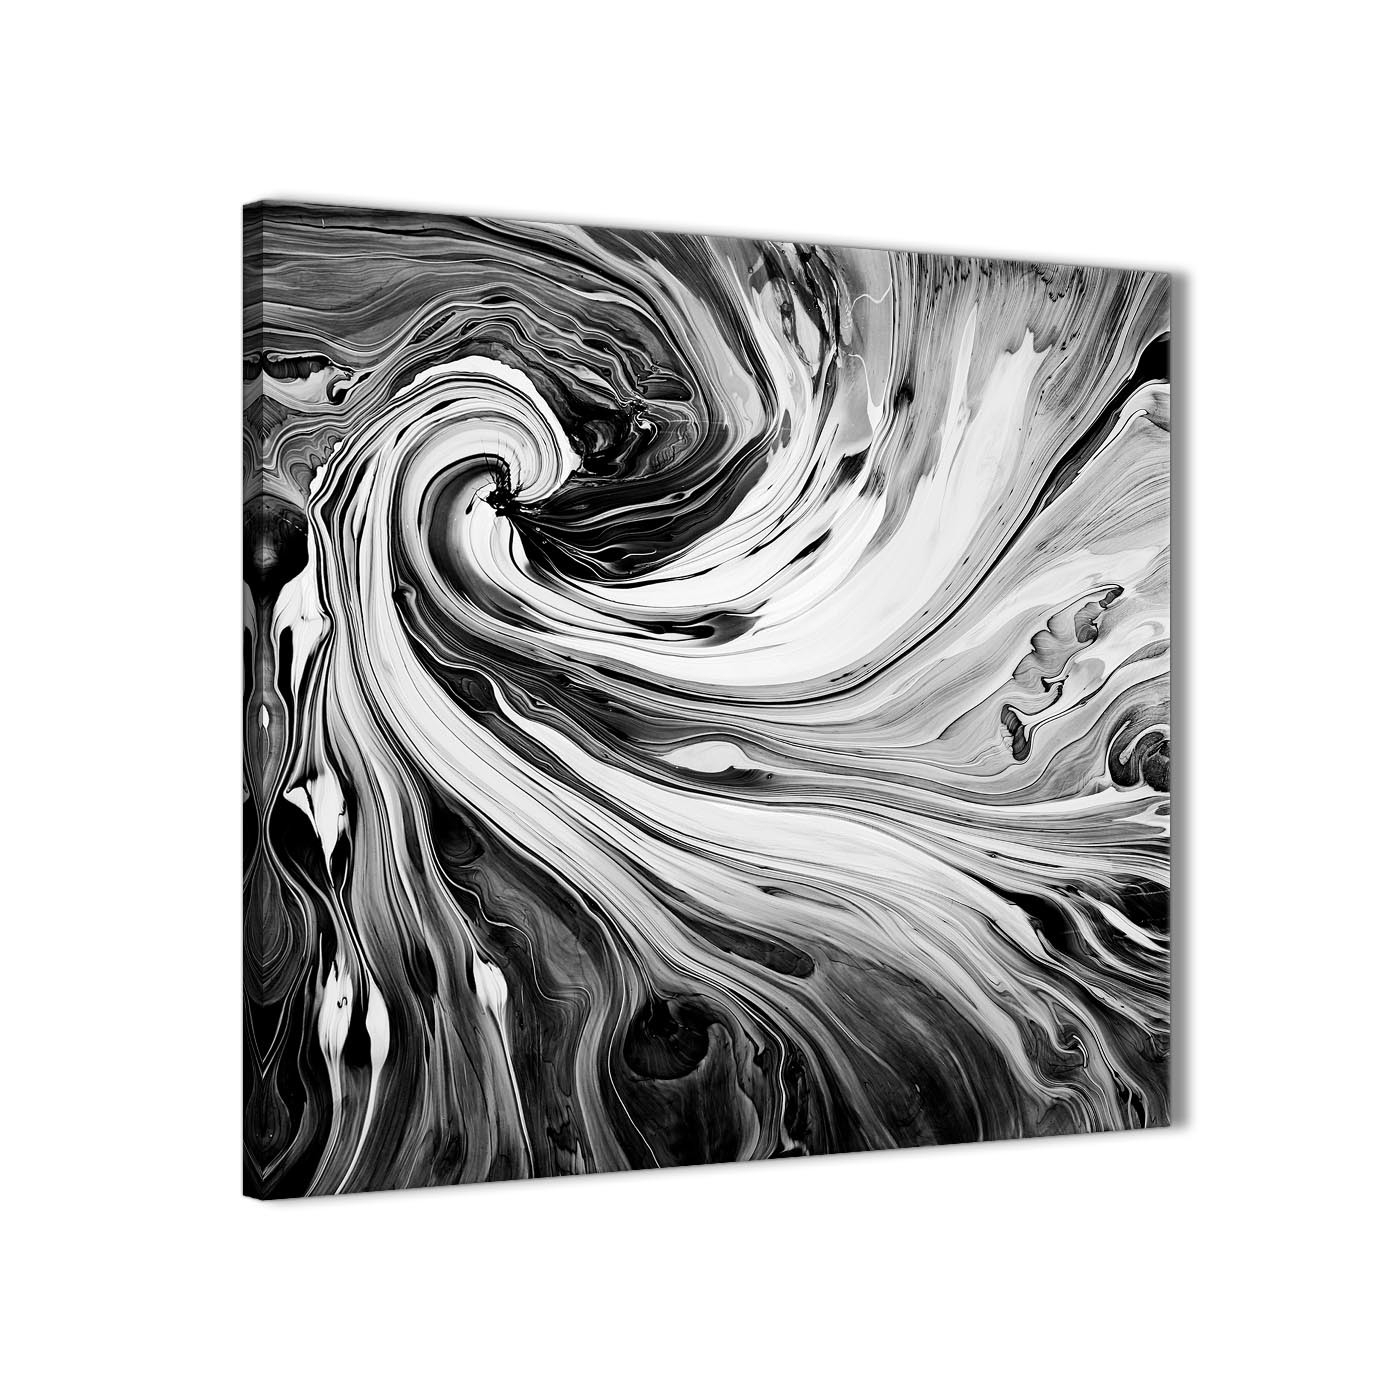 Black White Grey Swirls Modern Abstract Canvas Wall Art – 49Cm For 2017 Grey Abstract Canvas Wall Art (View 7 of 20)